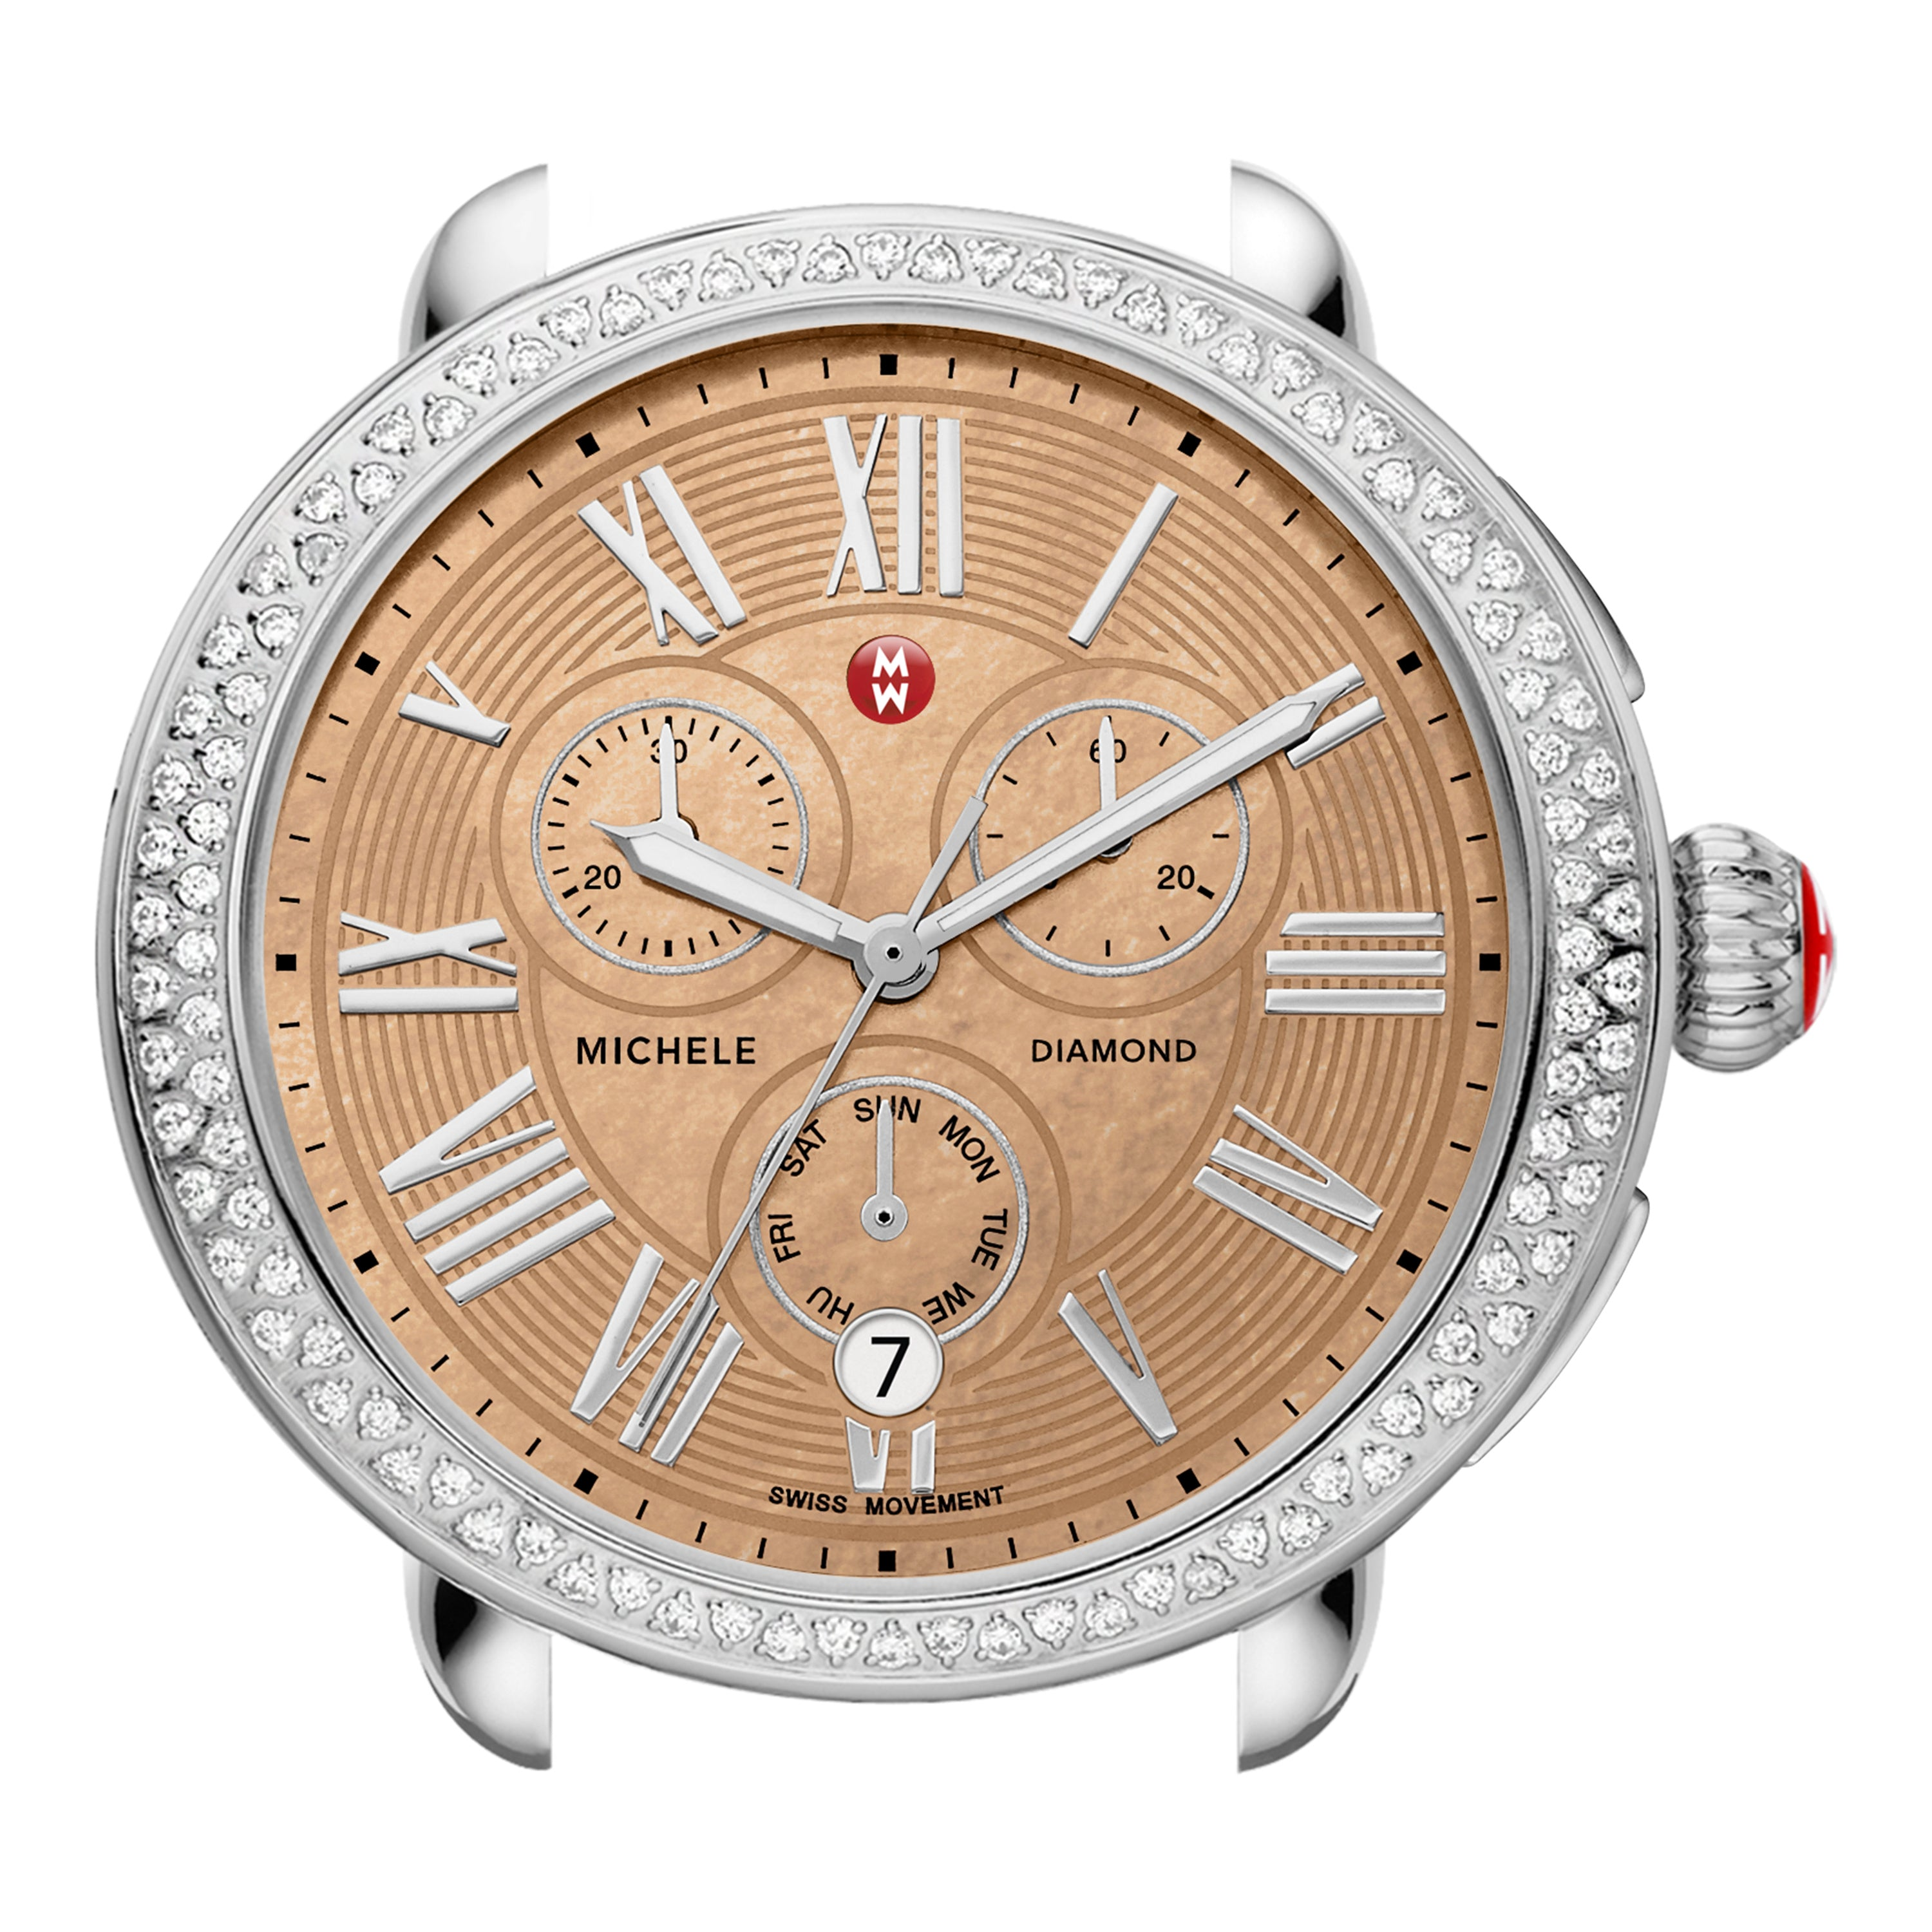 Serein Diamond, Metallic Rose Gold Dial Watch Head